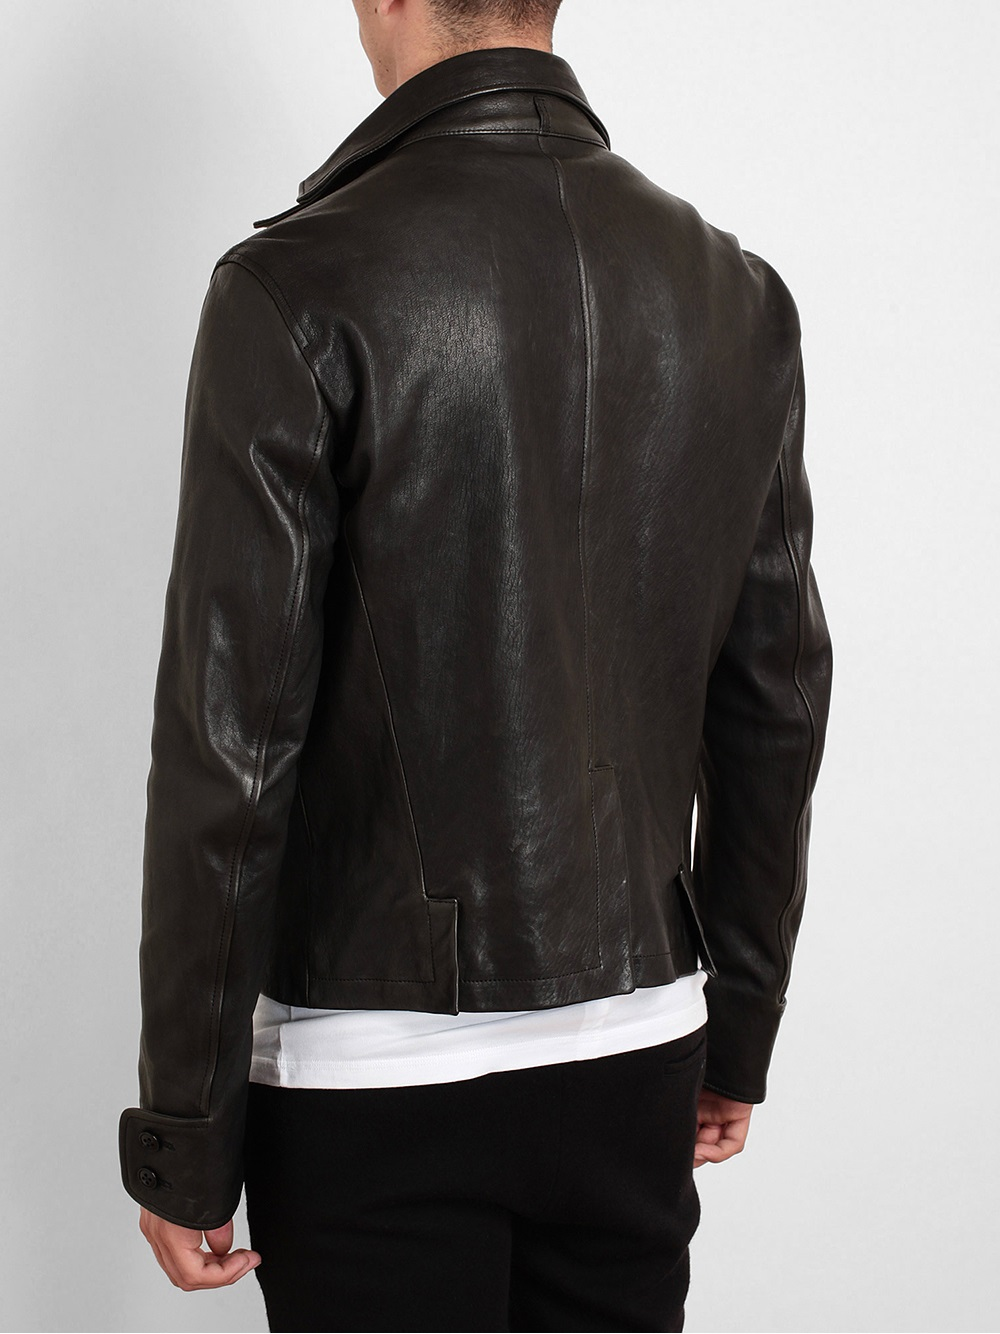 Ann Demeulemeester Distressed Leather Jacket in Black for Men